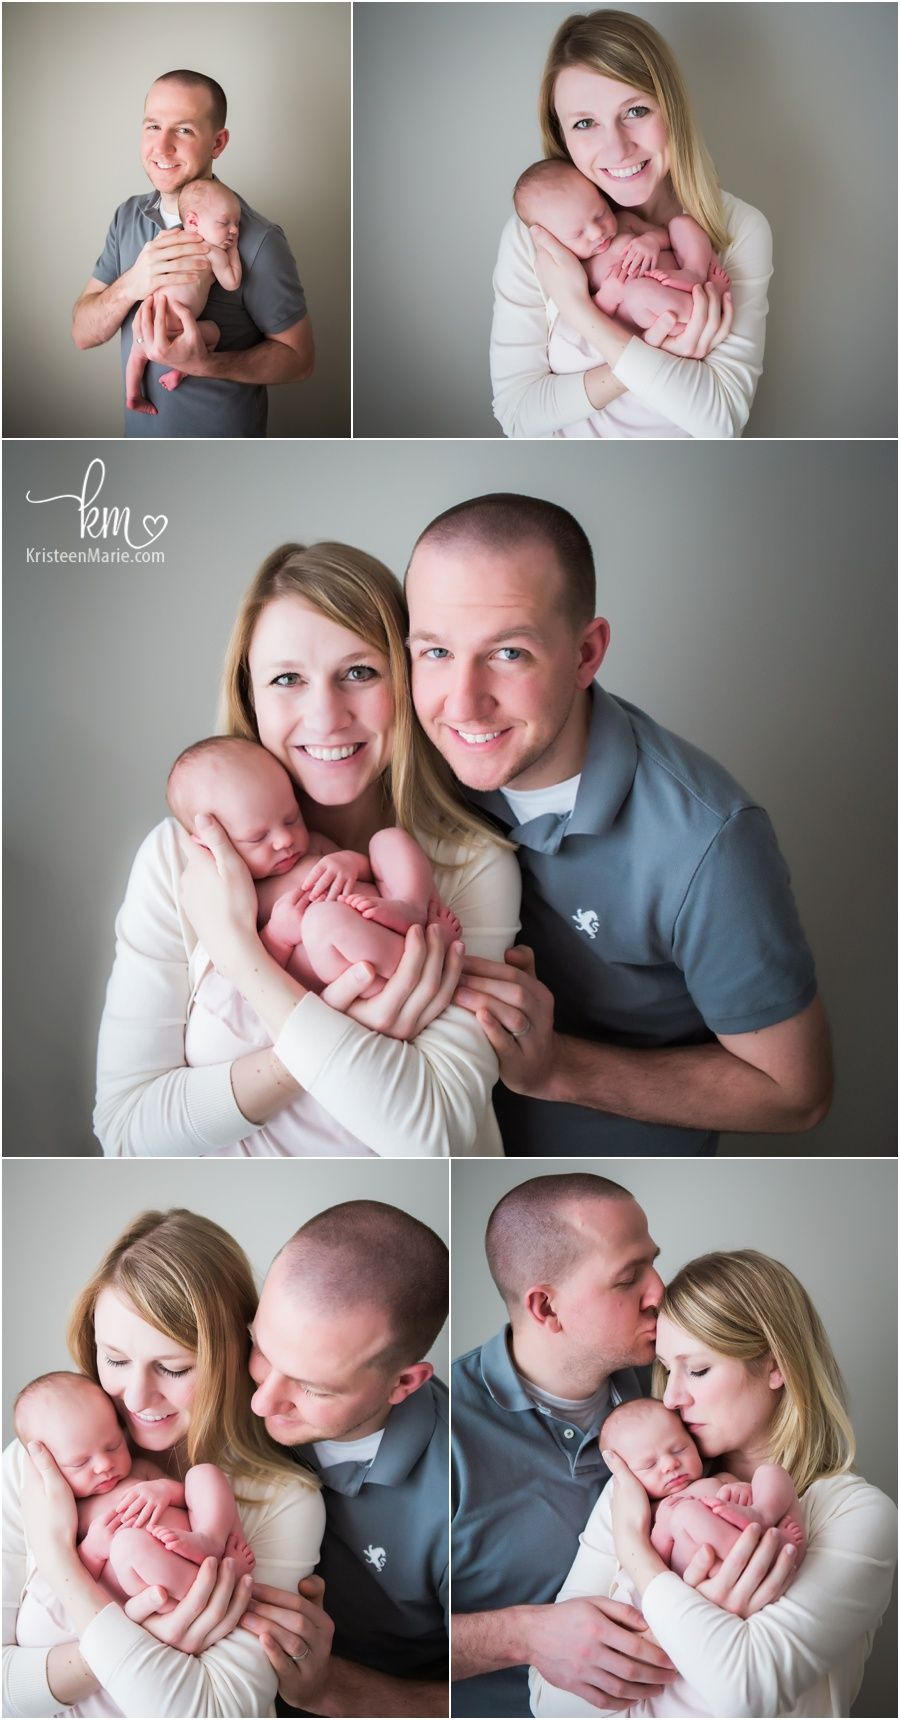 Family pictures with newborn baby family newborn photography posese